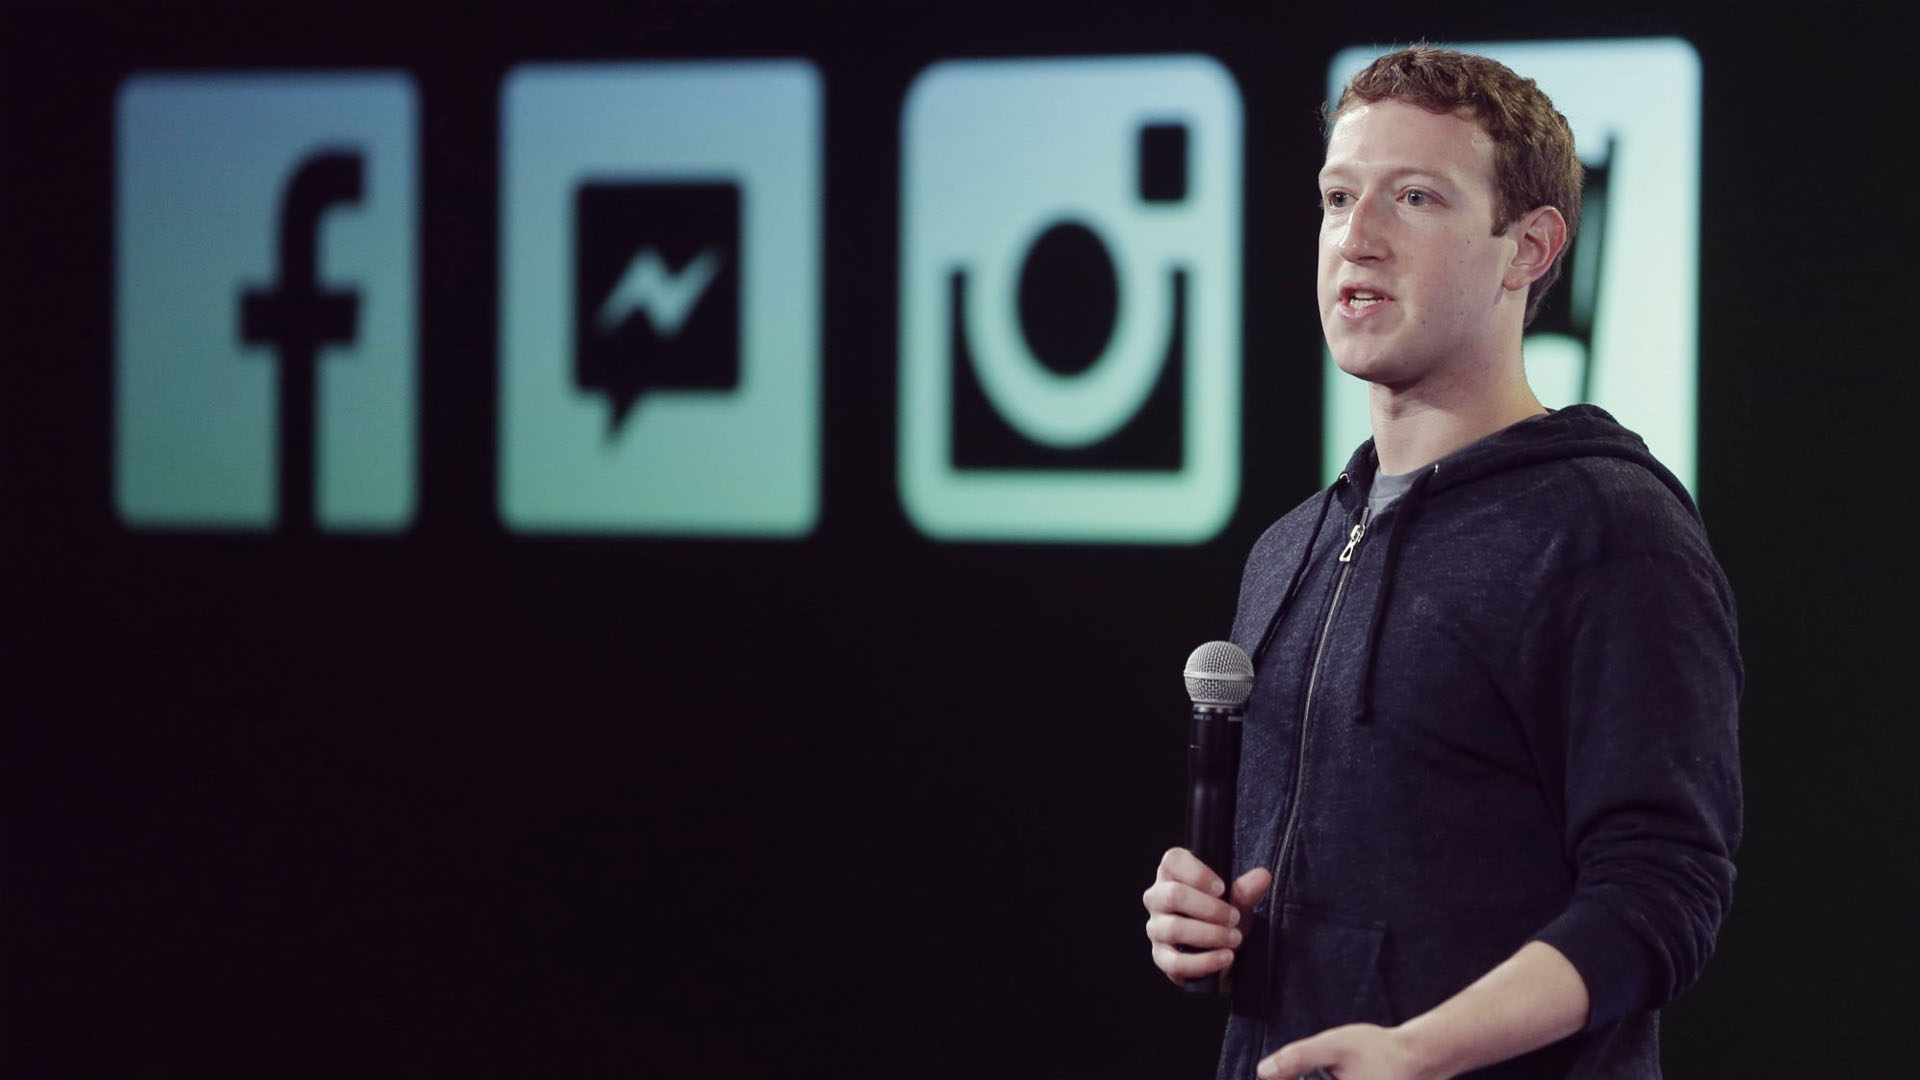 mark-zuckerberg-desktop-wallpaper-59722-61511-hd-wallpapers.jpg (1920×1080)